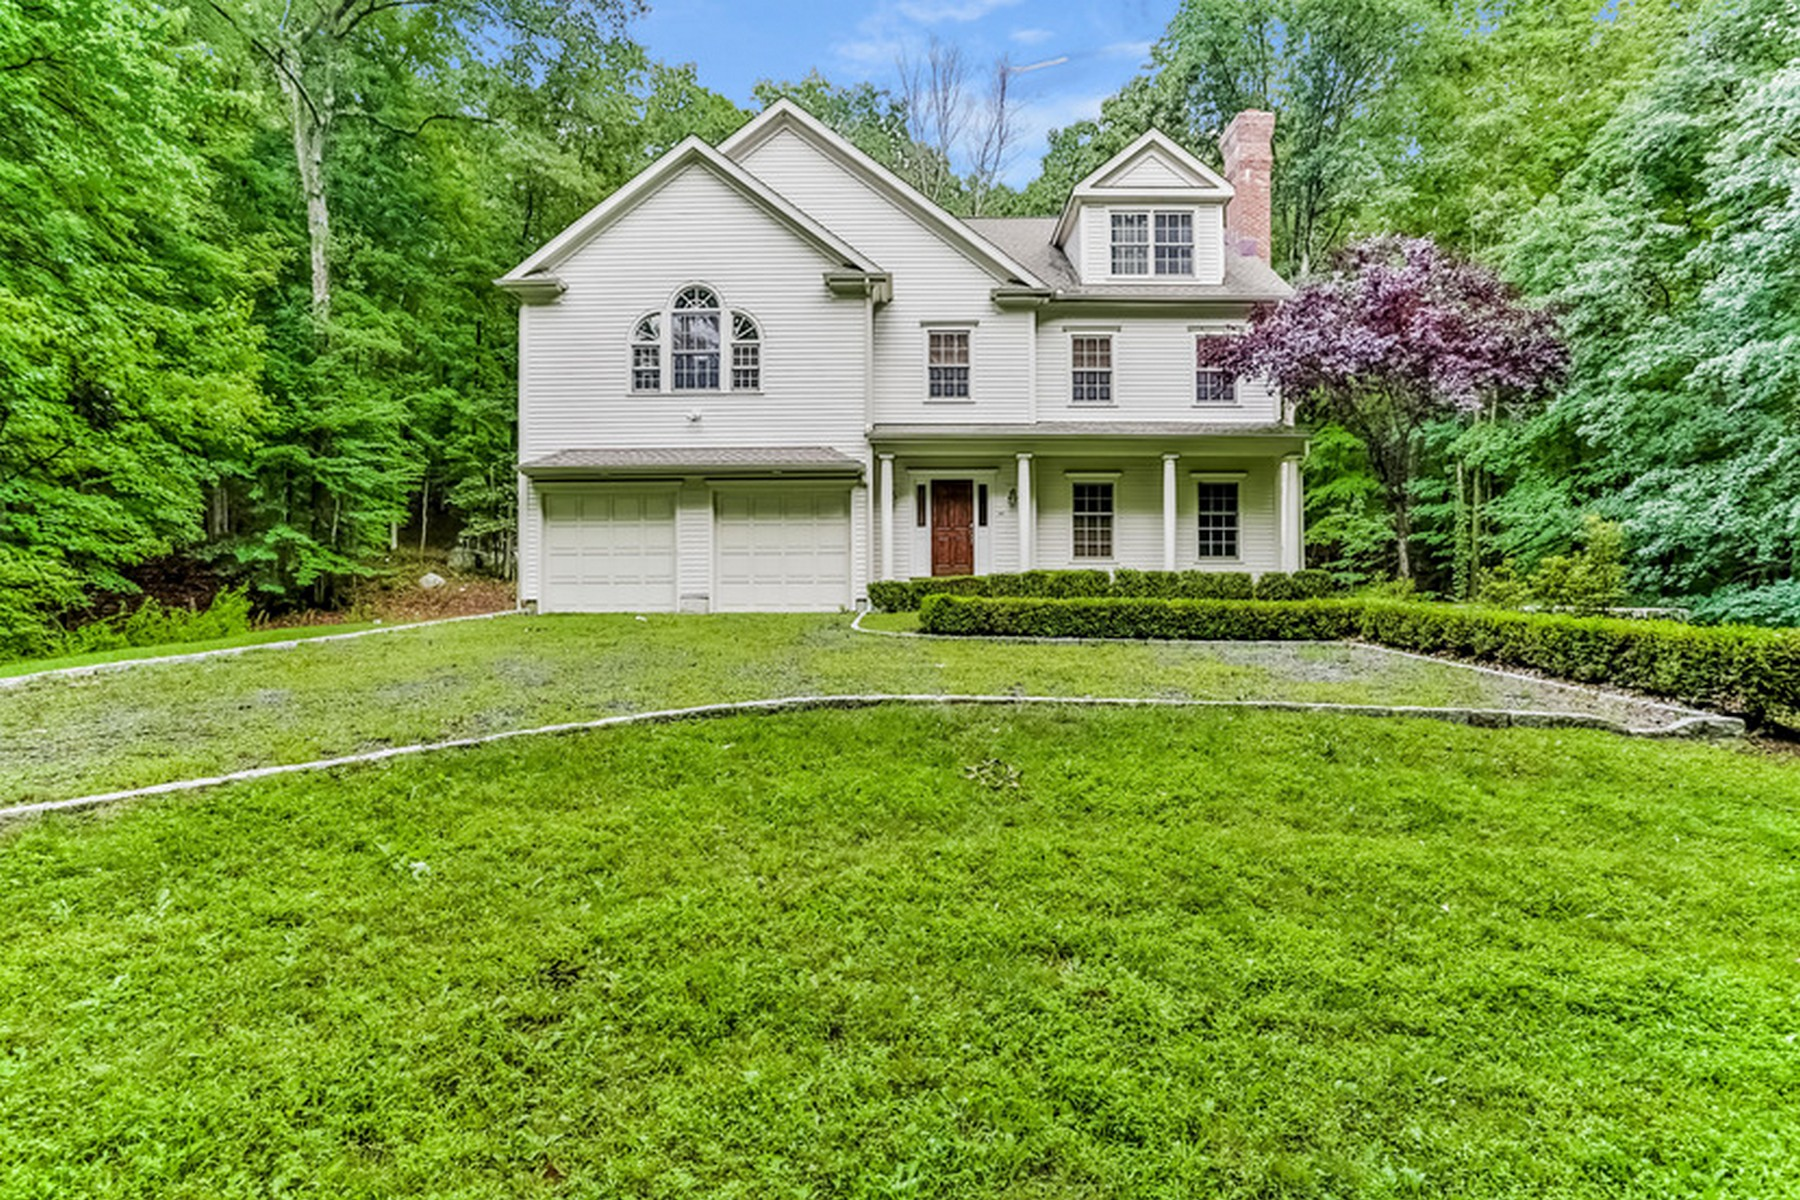 Single Family Home for Sale at Lower Weston 305 Newtown Turnpike Weston, Connecticut 06883 United States